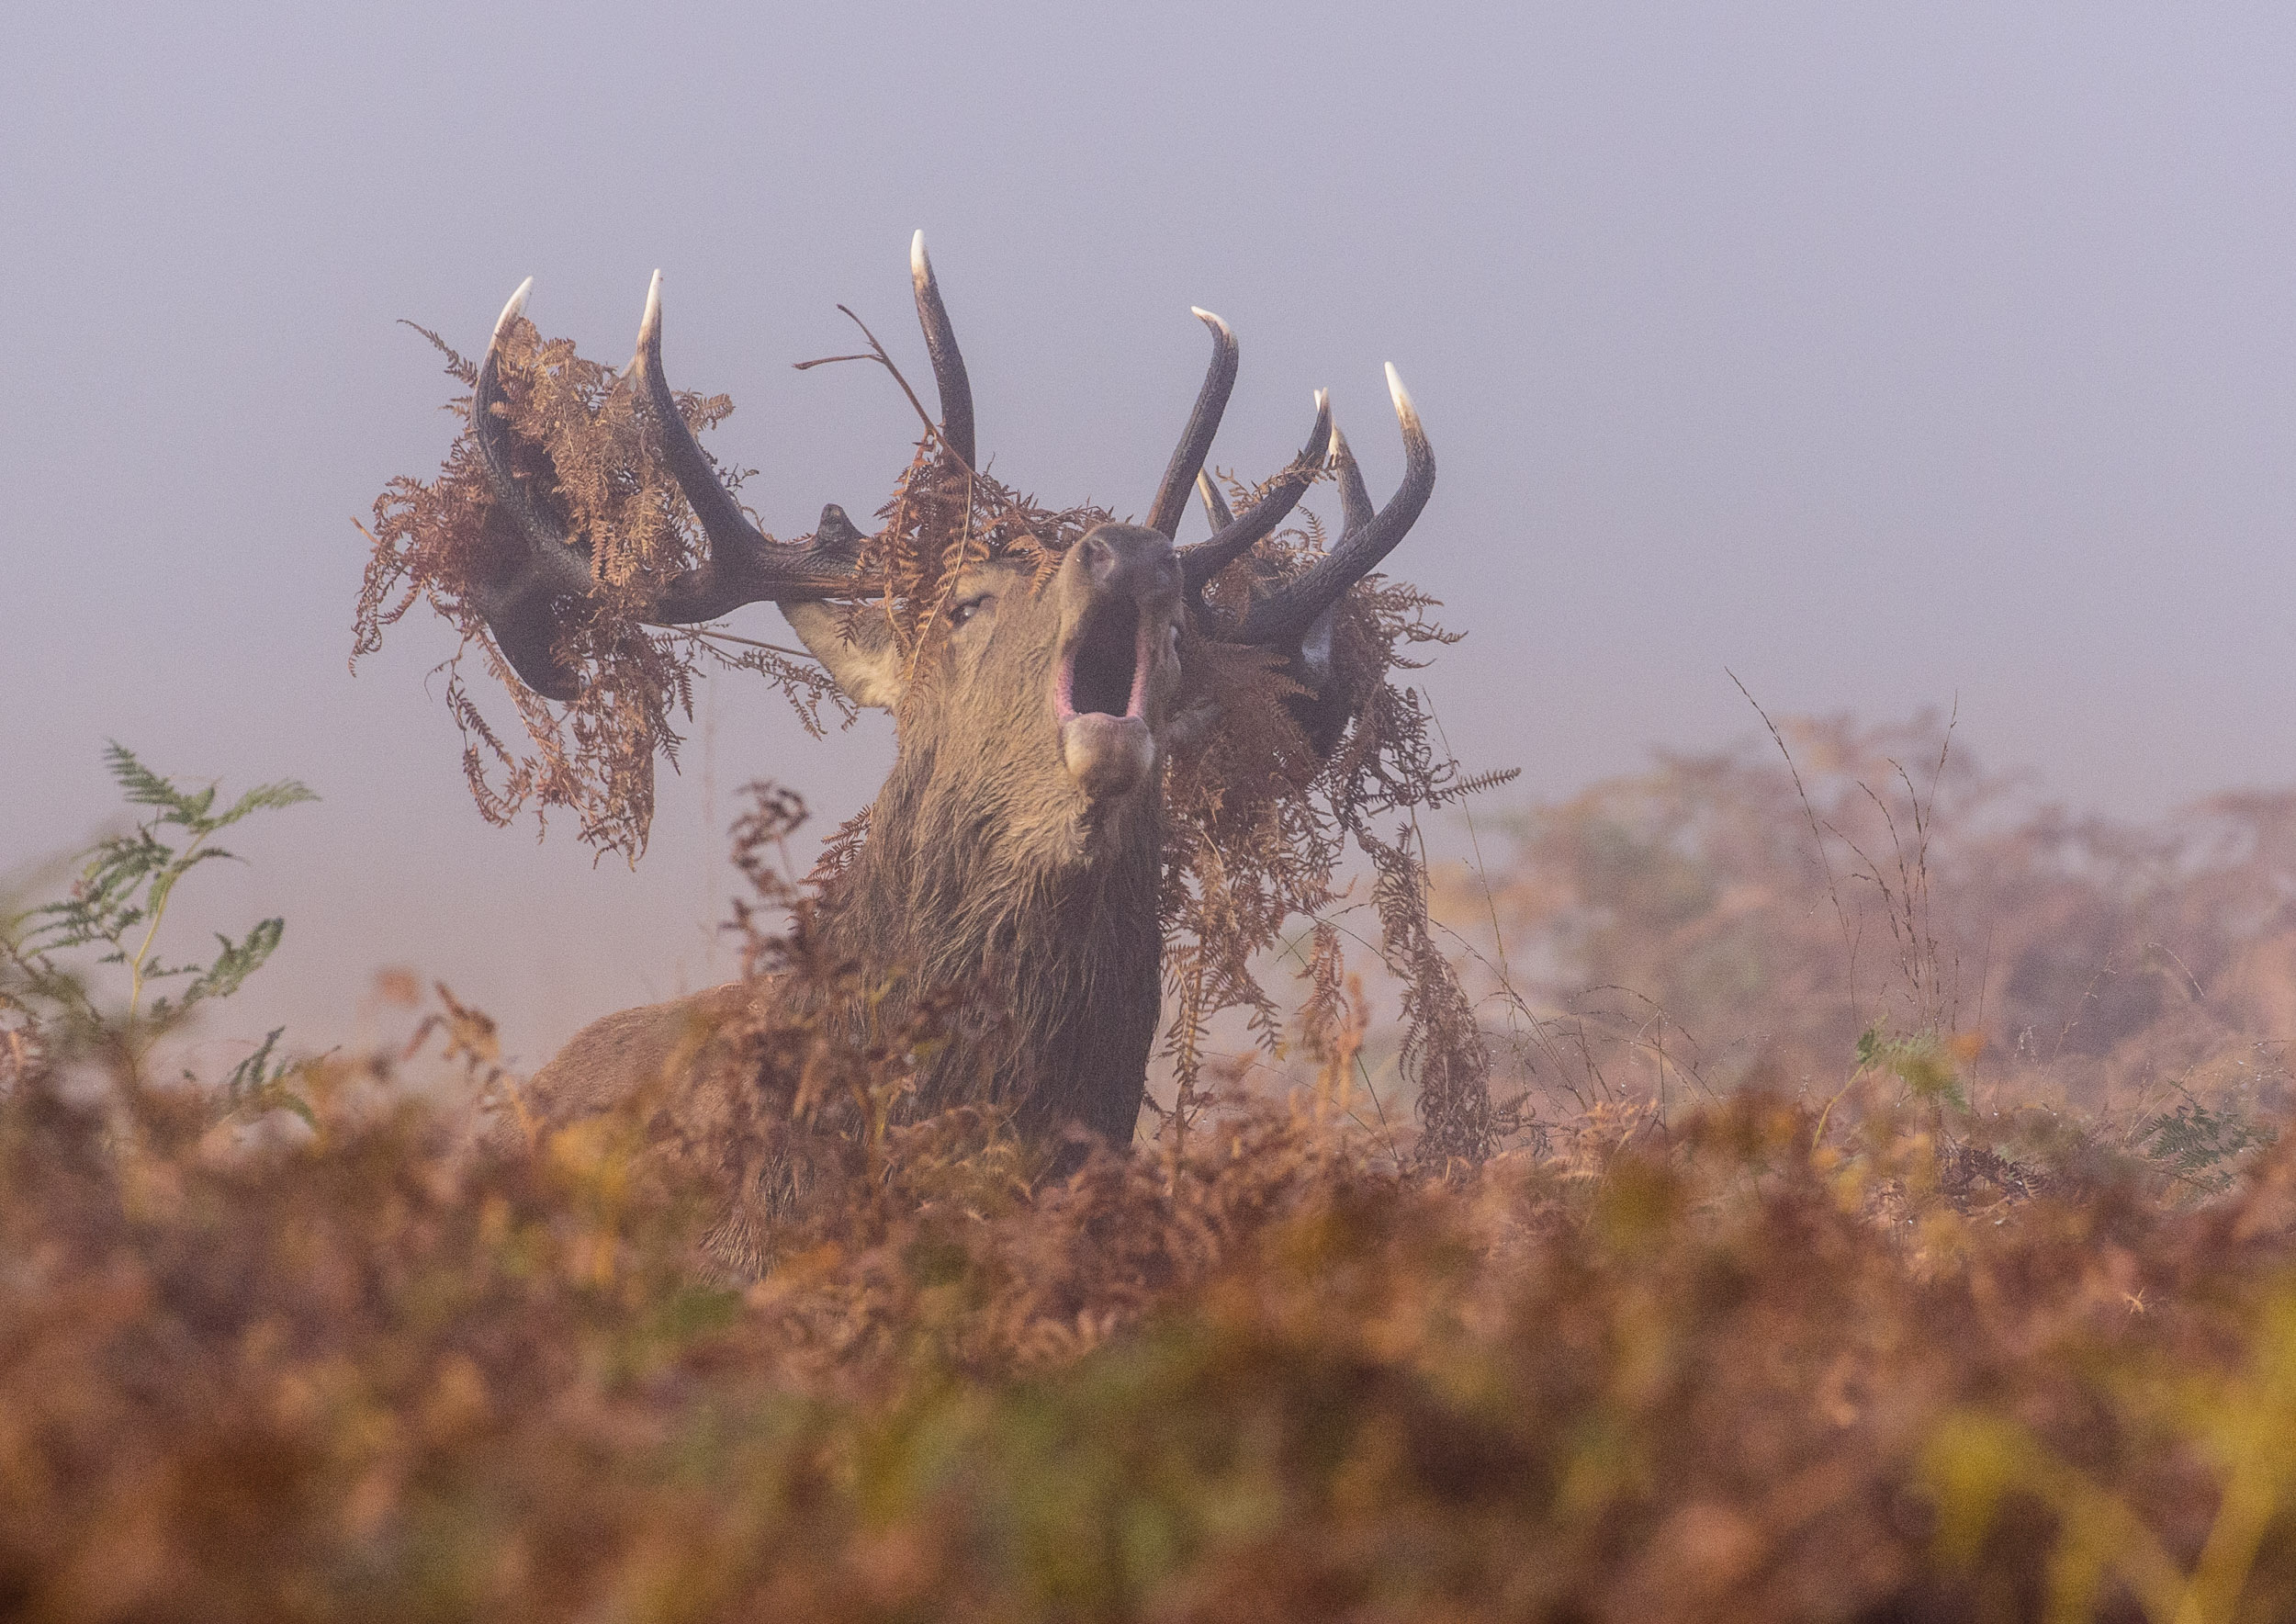 Red Deer (Cervus elaphus), London, male stag roaring during the rut with bracken-covered antlers, 10/12